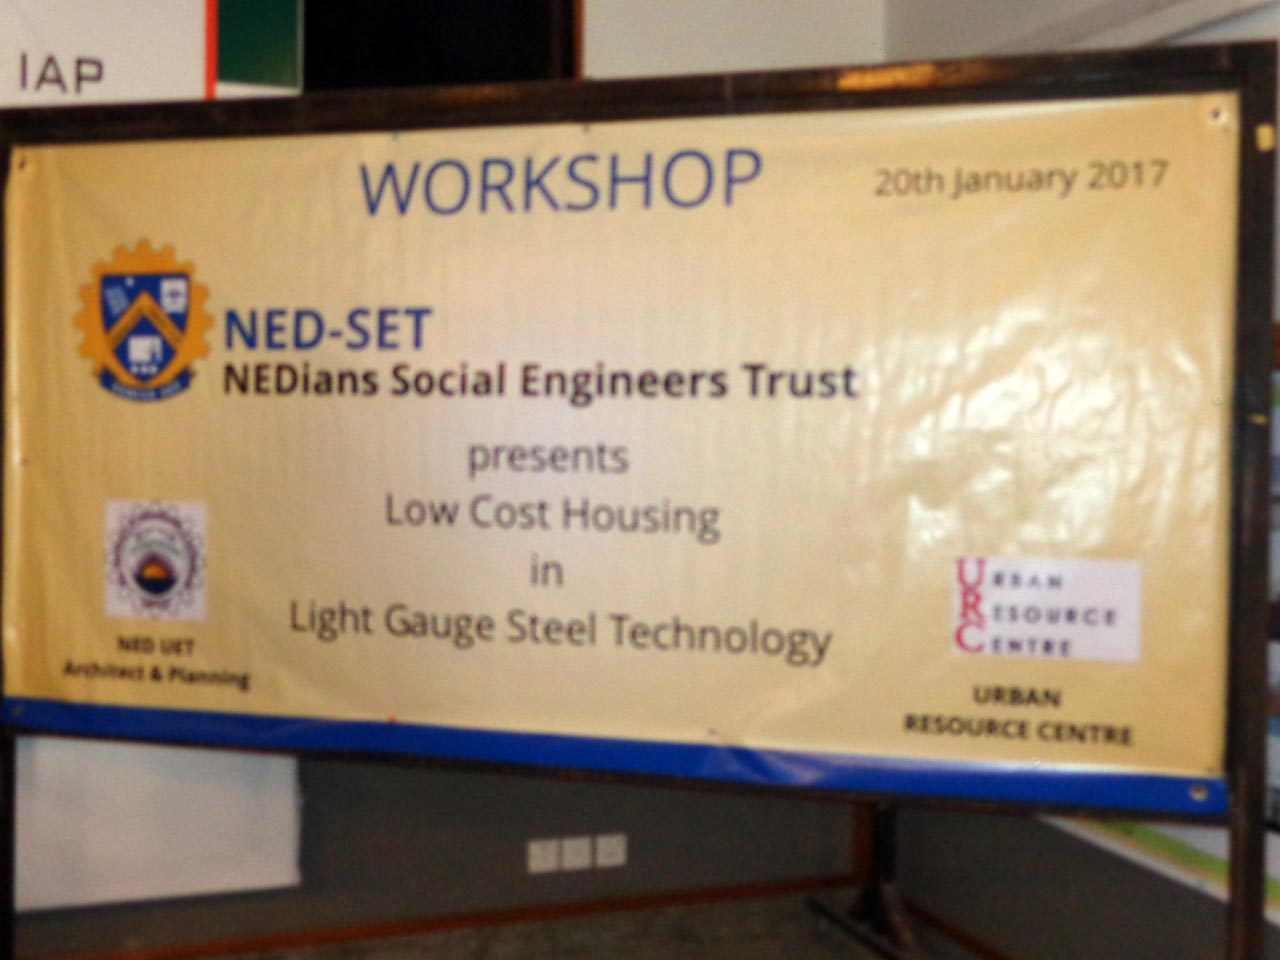 The banner for the NED-SET Workshop